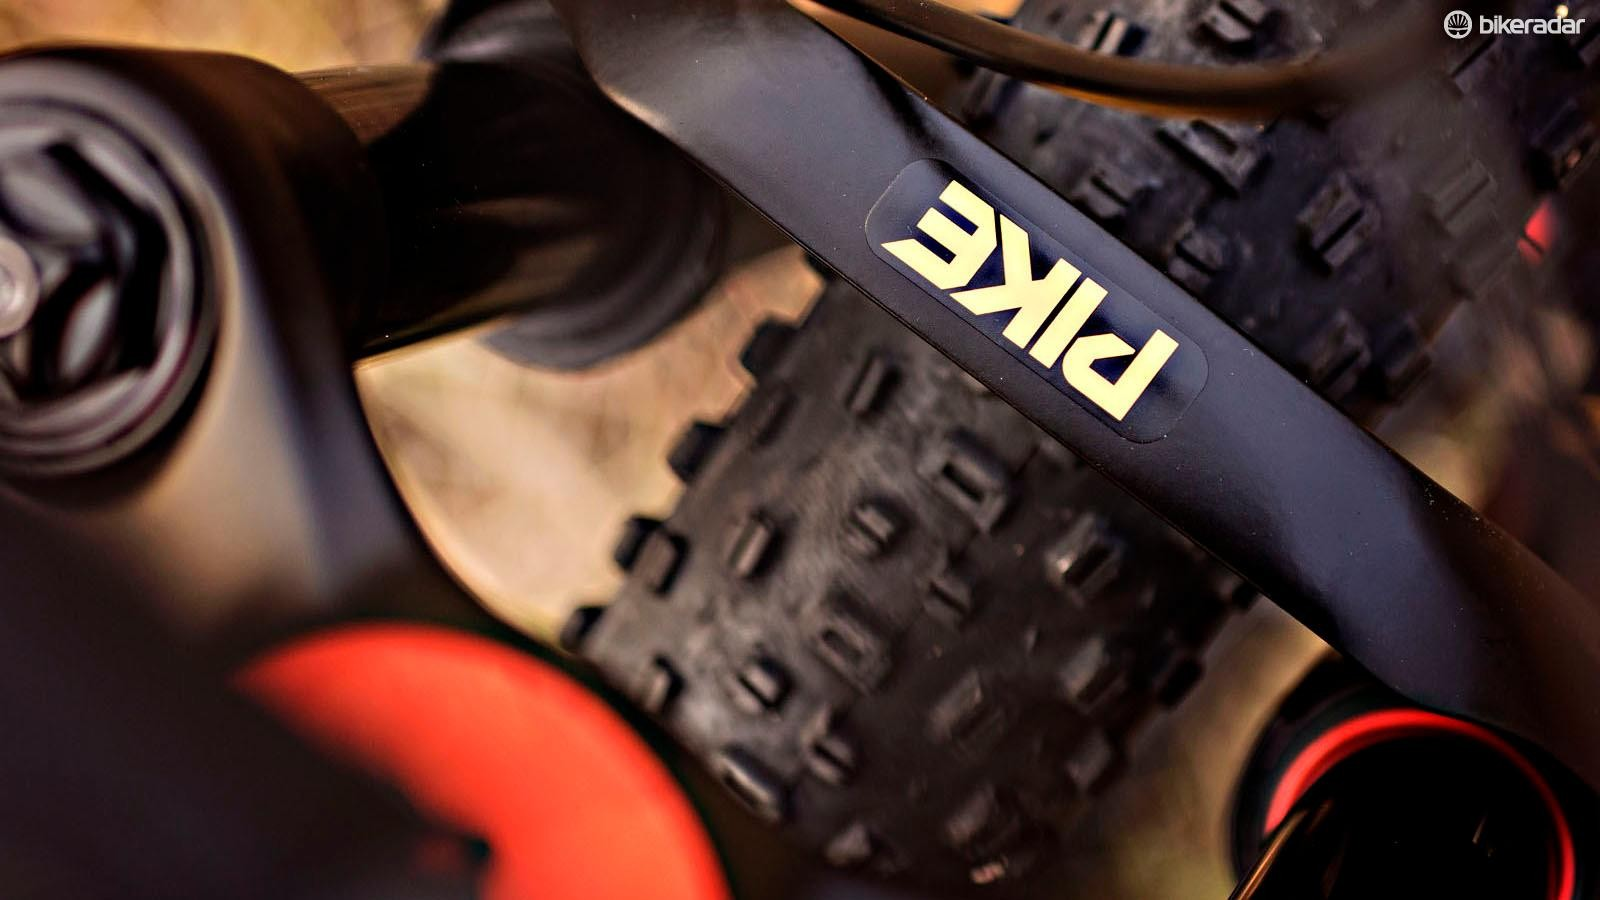 Salsa worked with RockShox to roll out a 100mm version of the 29+ Pike RC specifically for the Deadwood